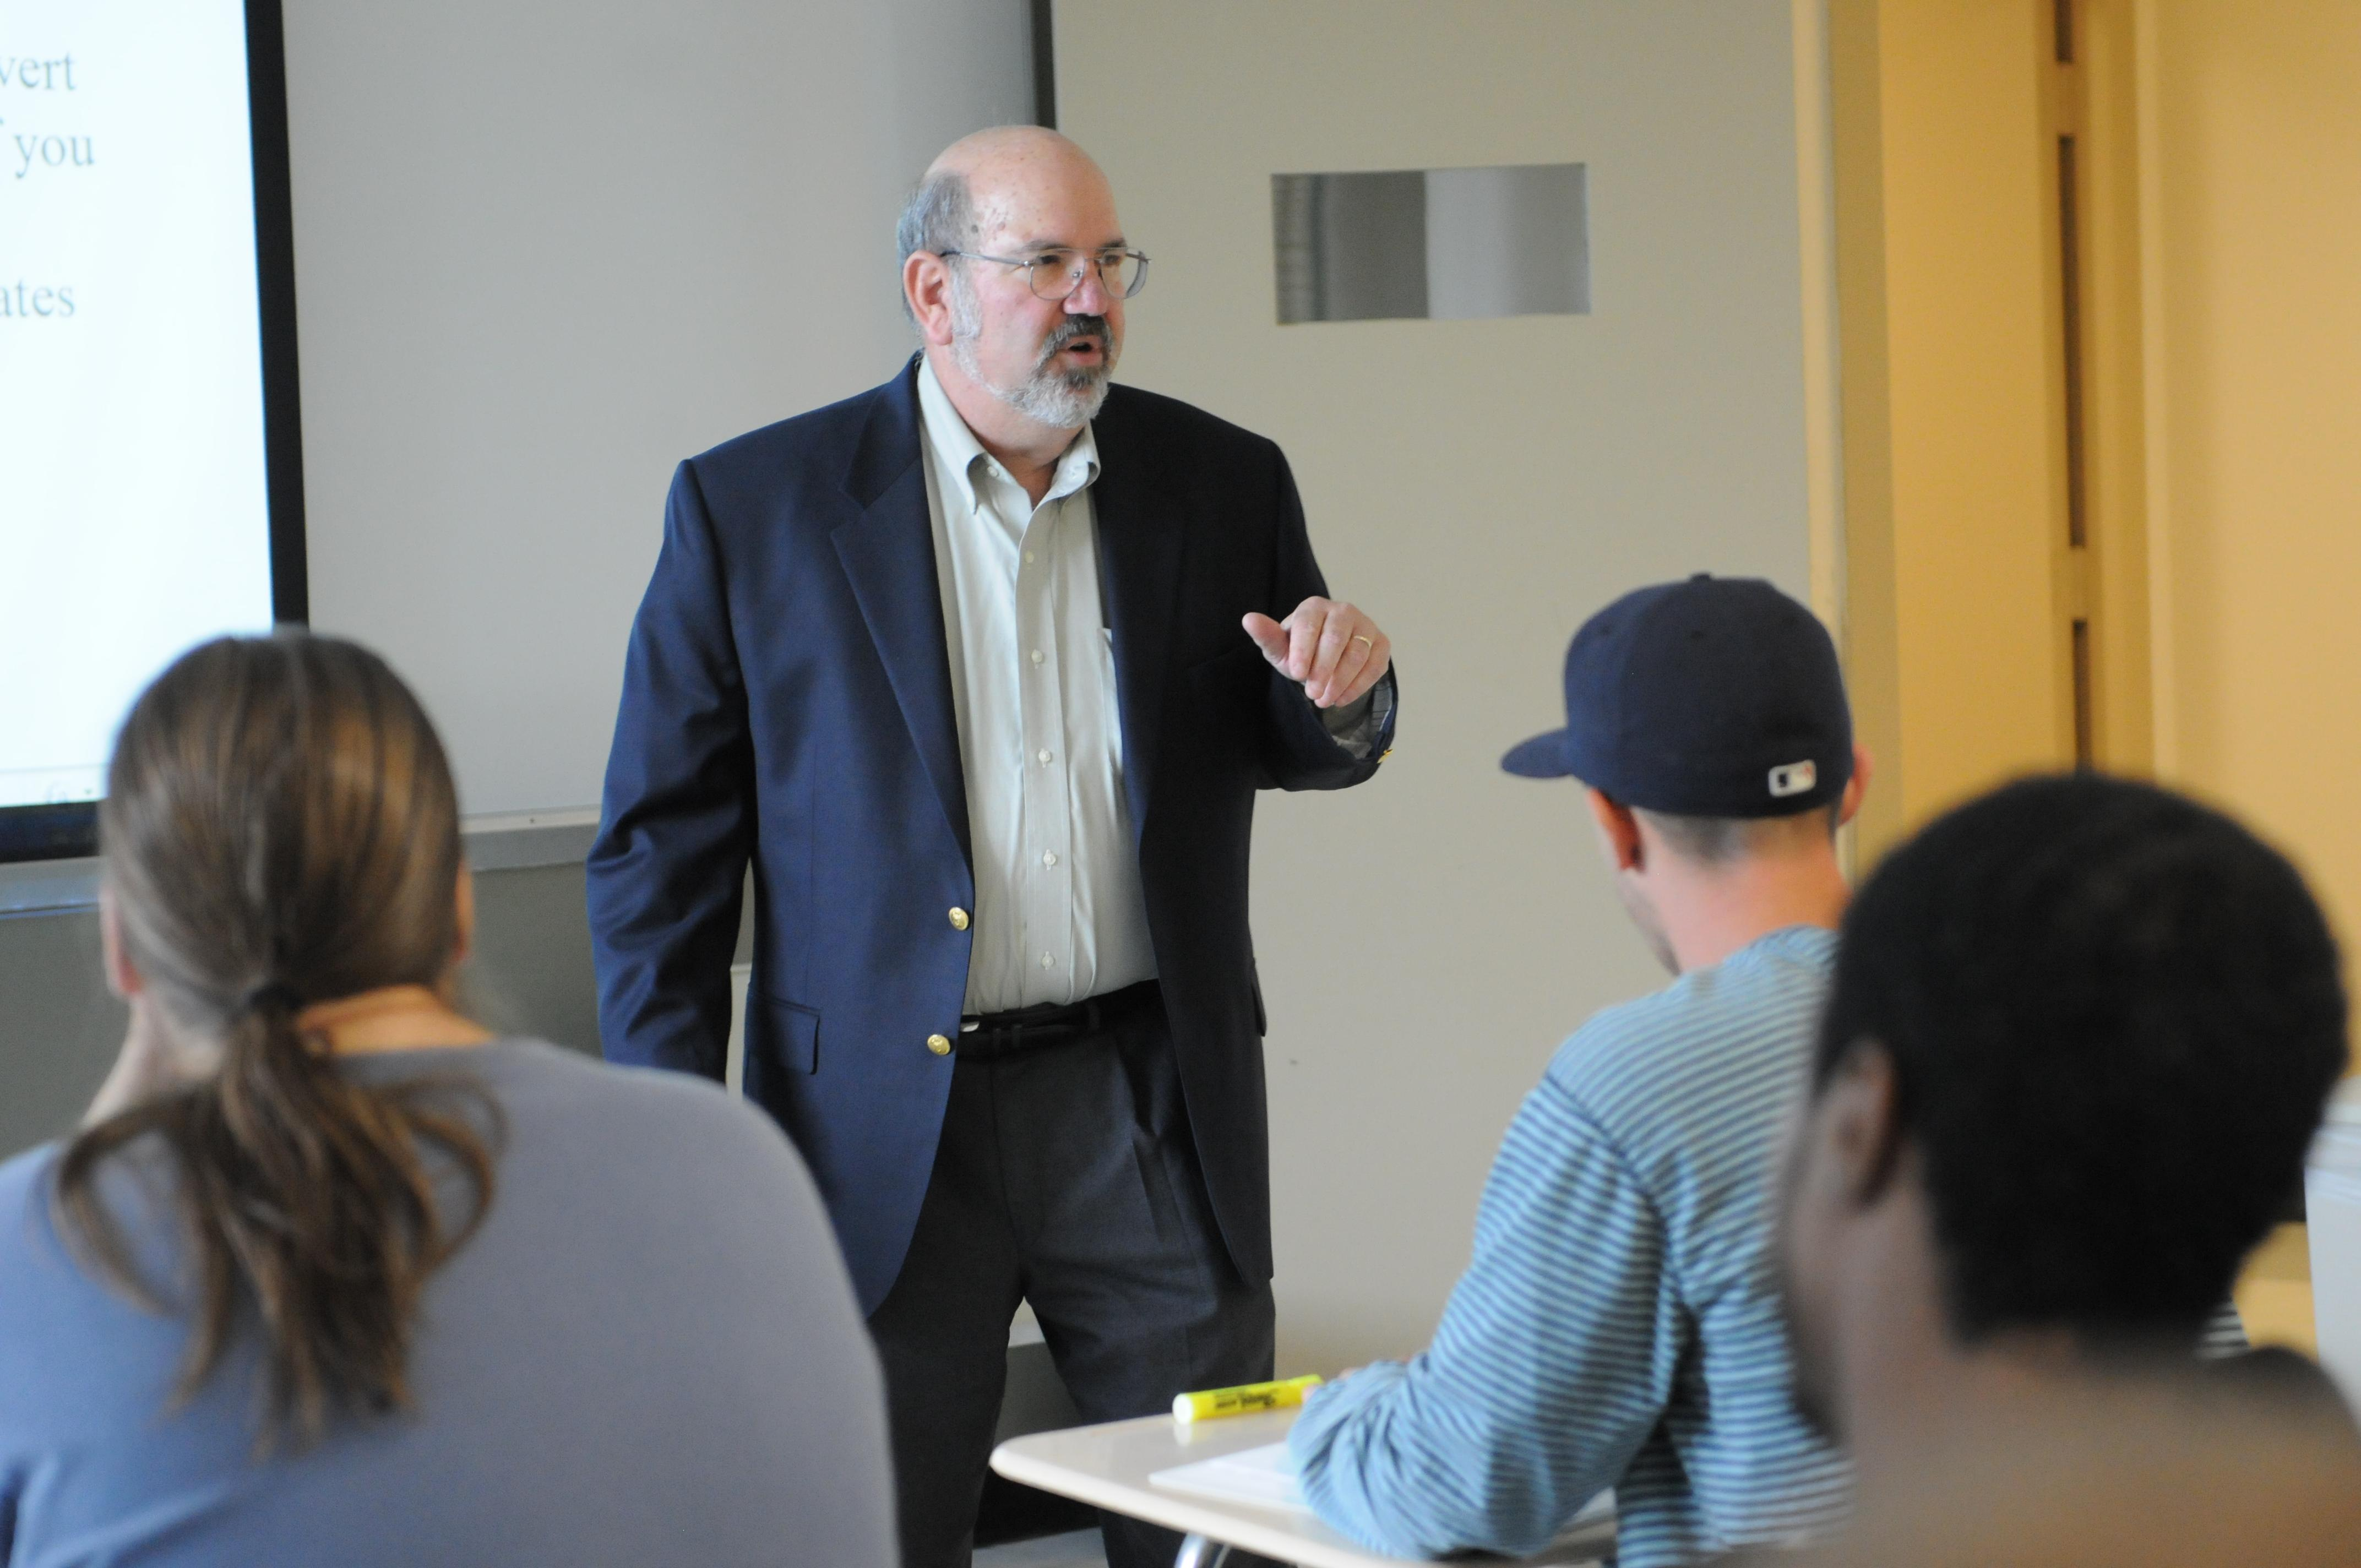 Professor Lawrence Spizman lecturing in a classroom